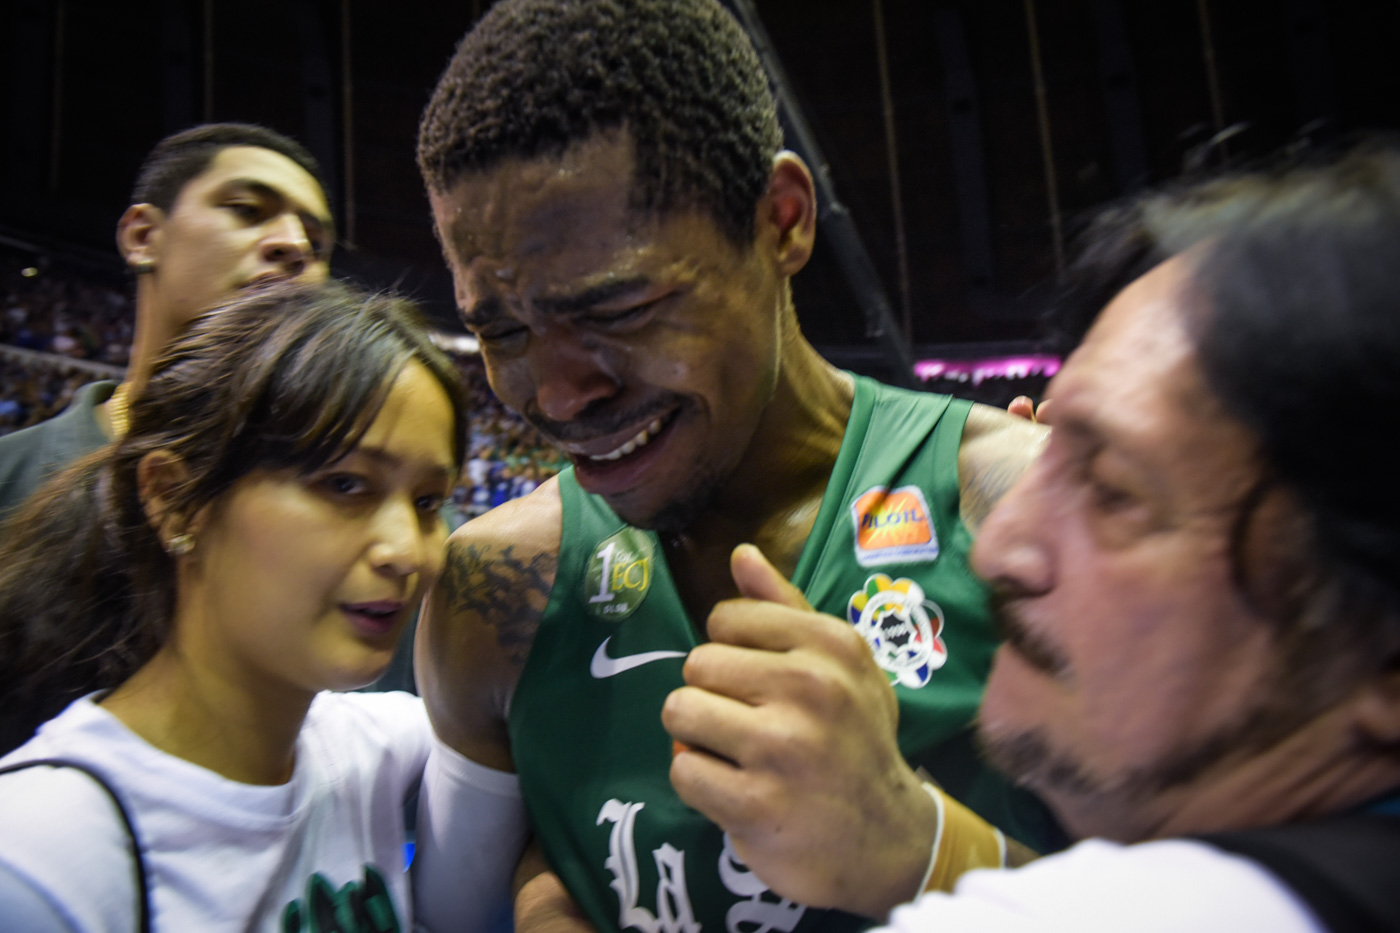 SEASON 81. Ben Mbala will be back in Season 81 for his last year of eligibility in the UAAP. Photo by Alecs Ongcal/Rappler